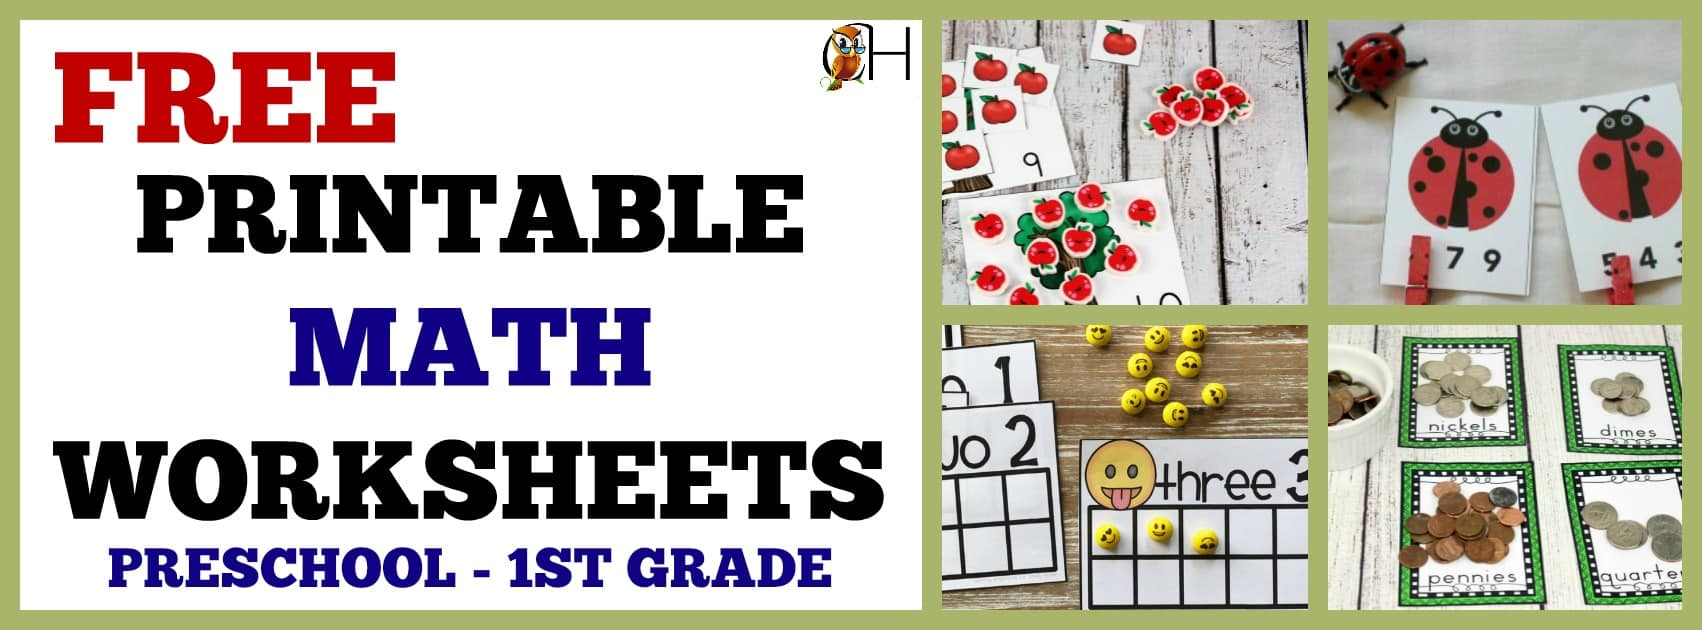 Free Printable Math Worksheets For Preschool 1st Grade